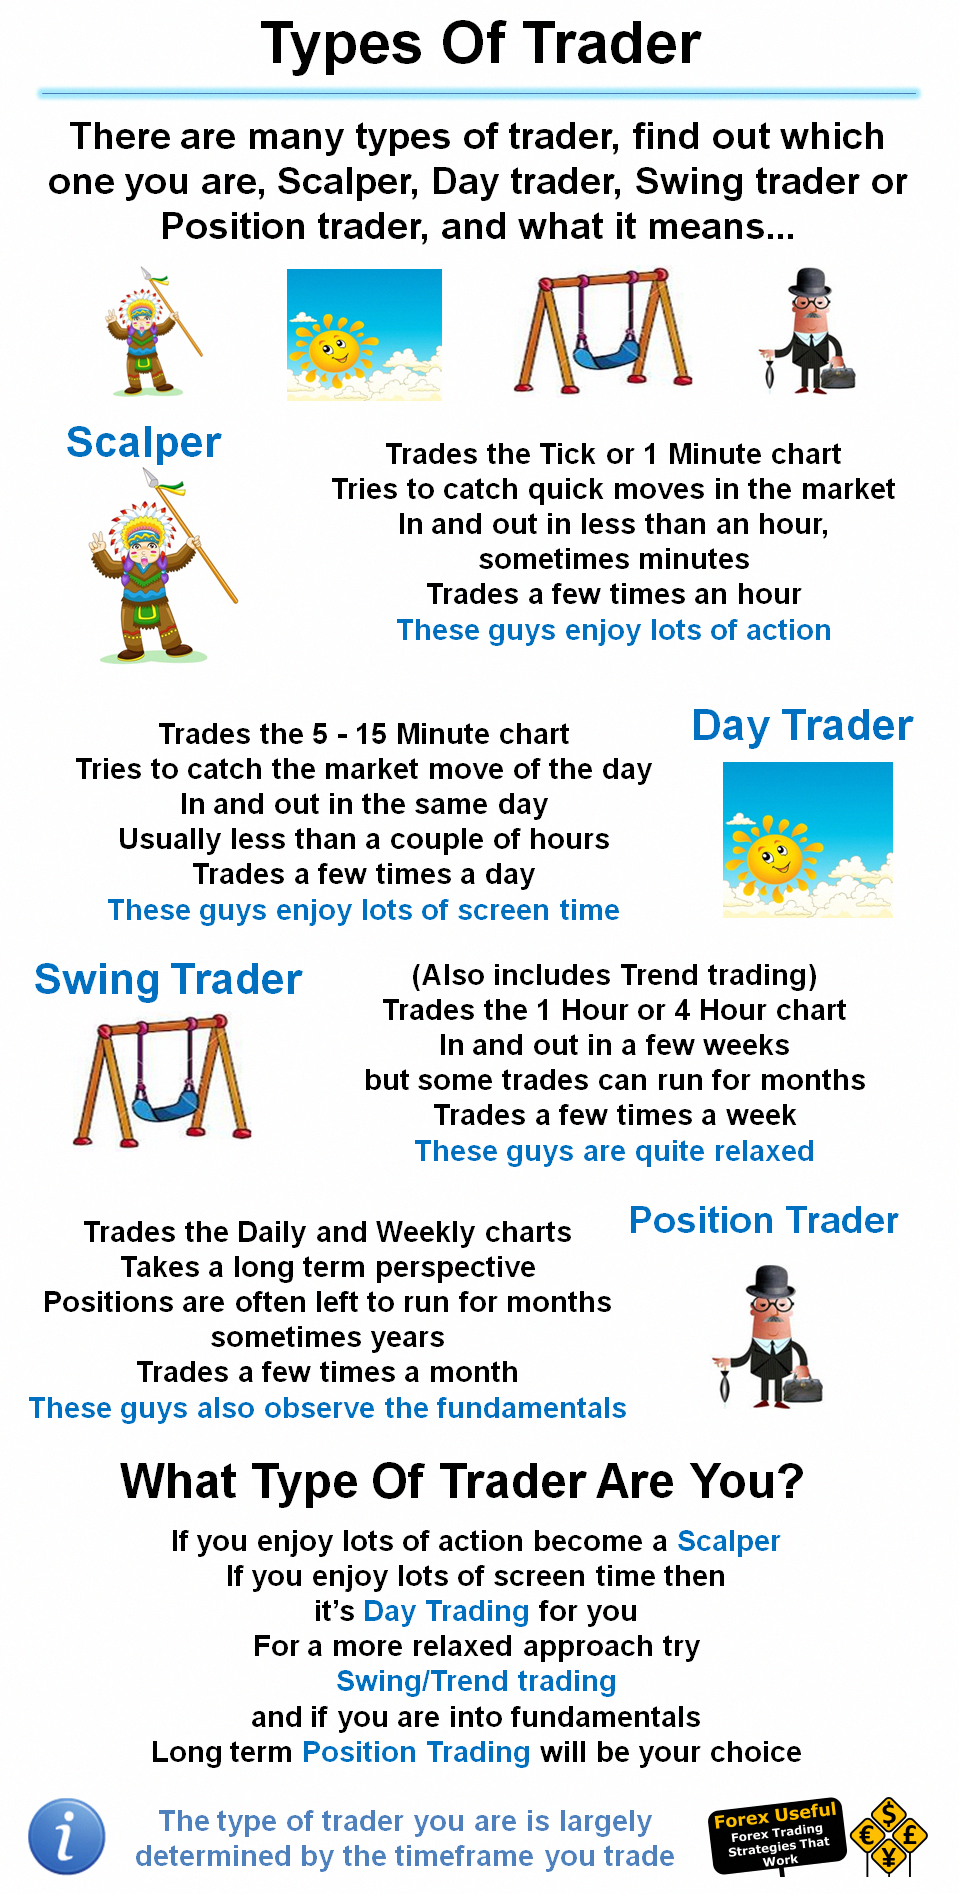 a Forex Trader (With images) Day trader, Trading